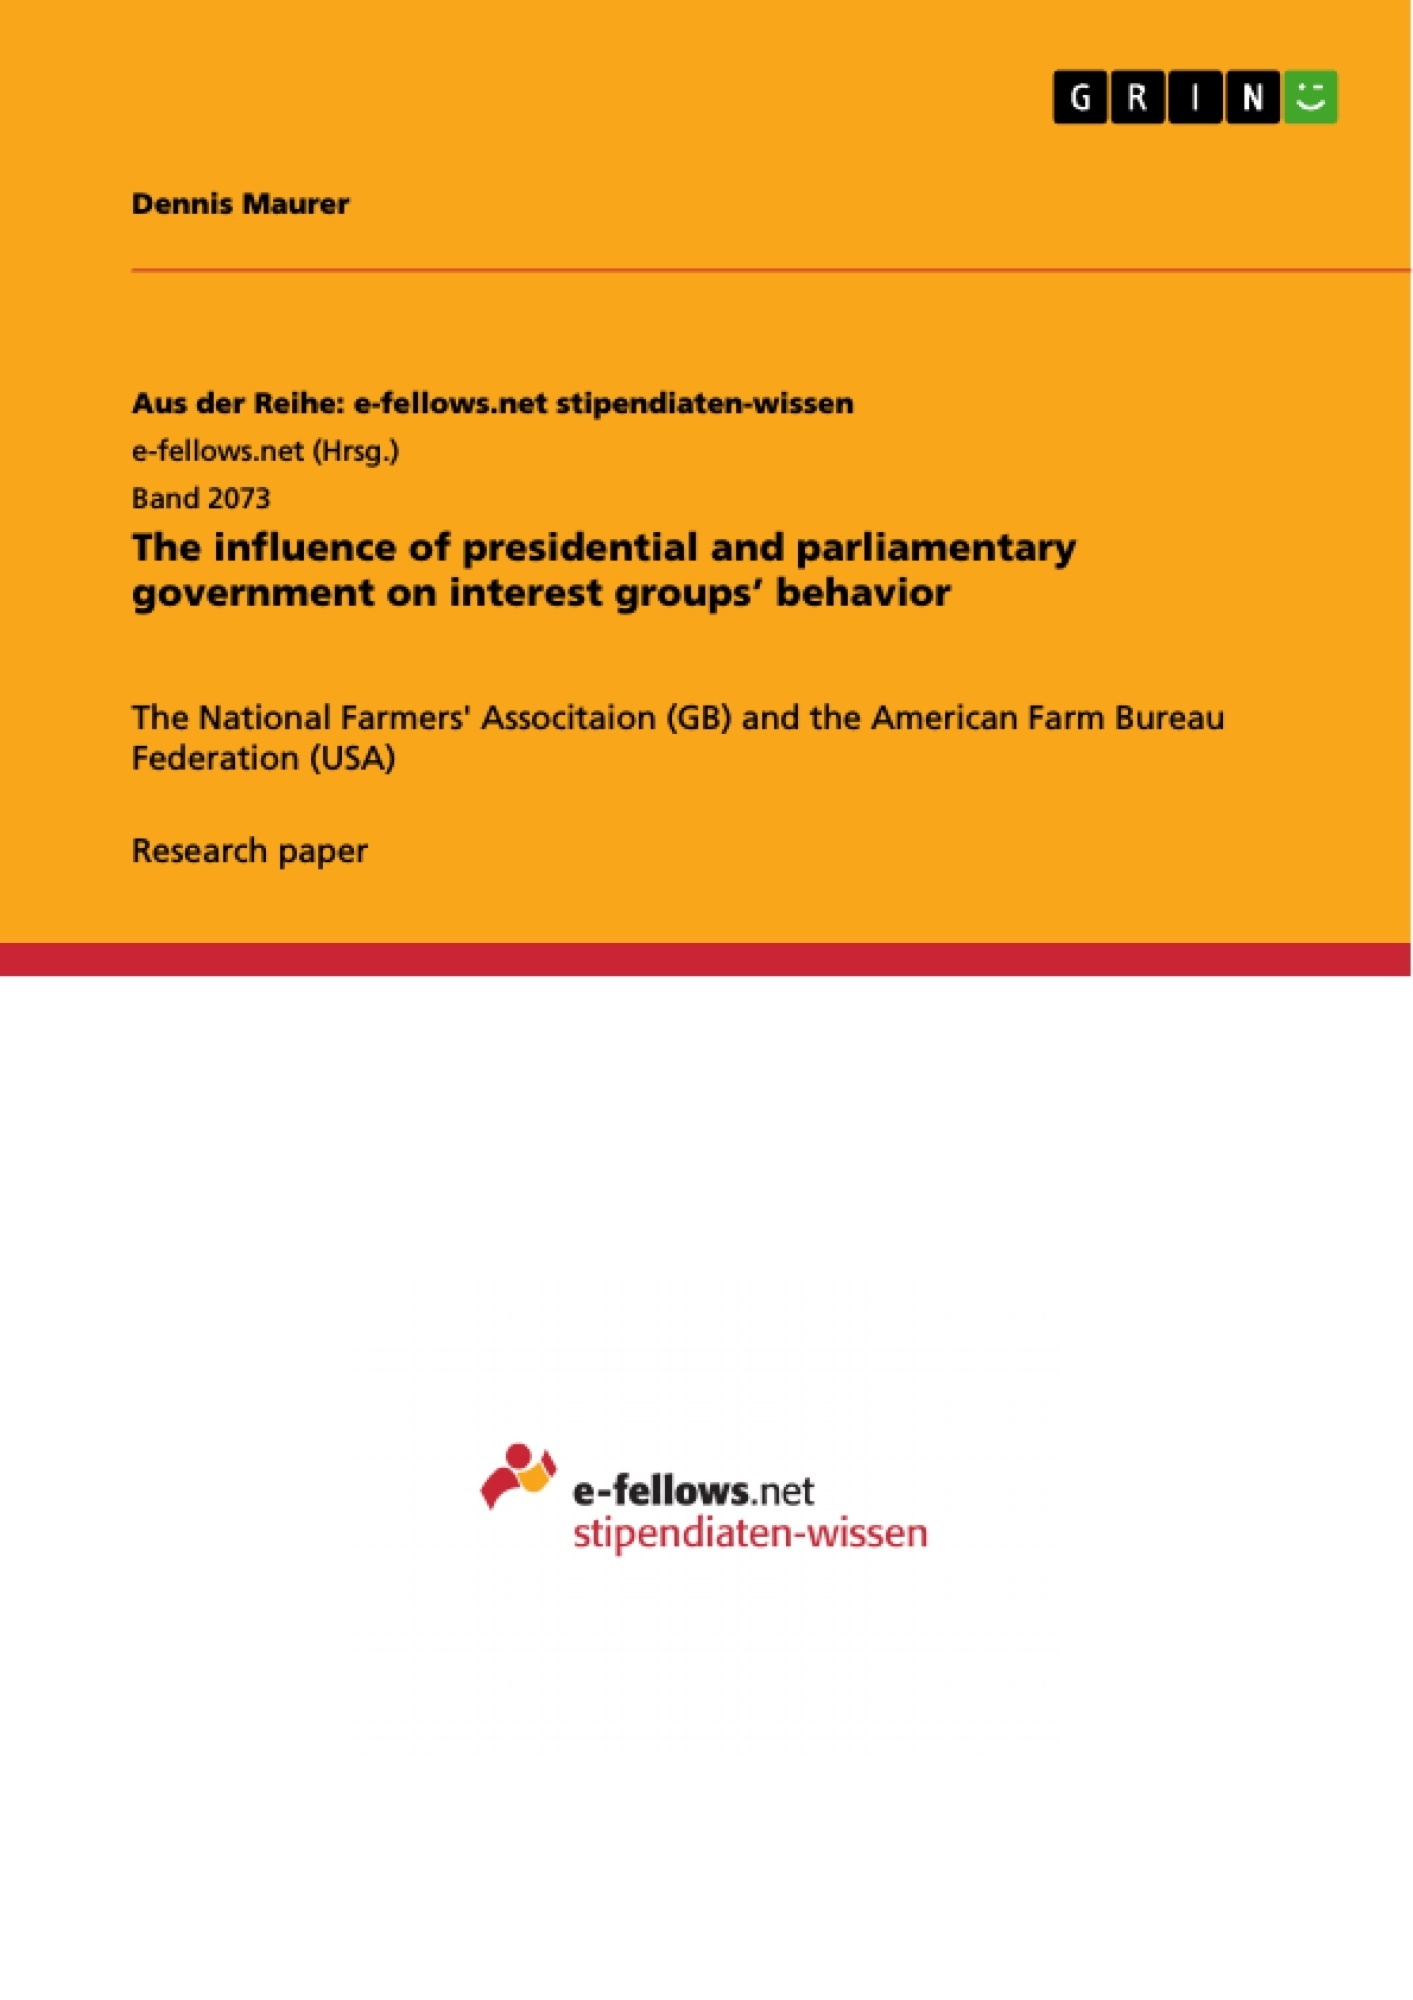 Title: The influence of presidential and parliamentary government on interest groups' behavior